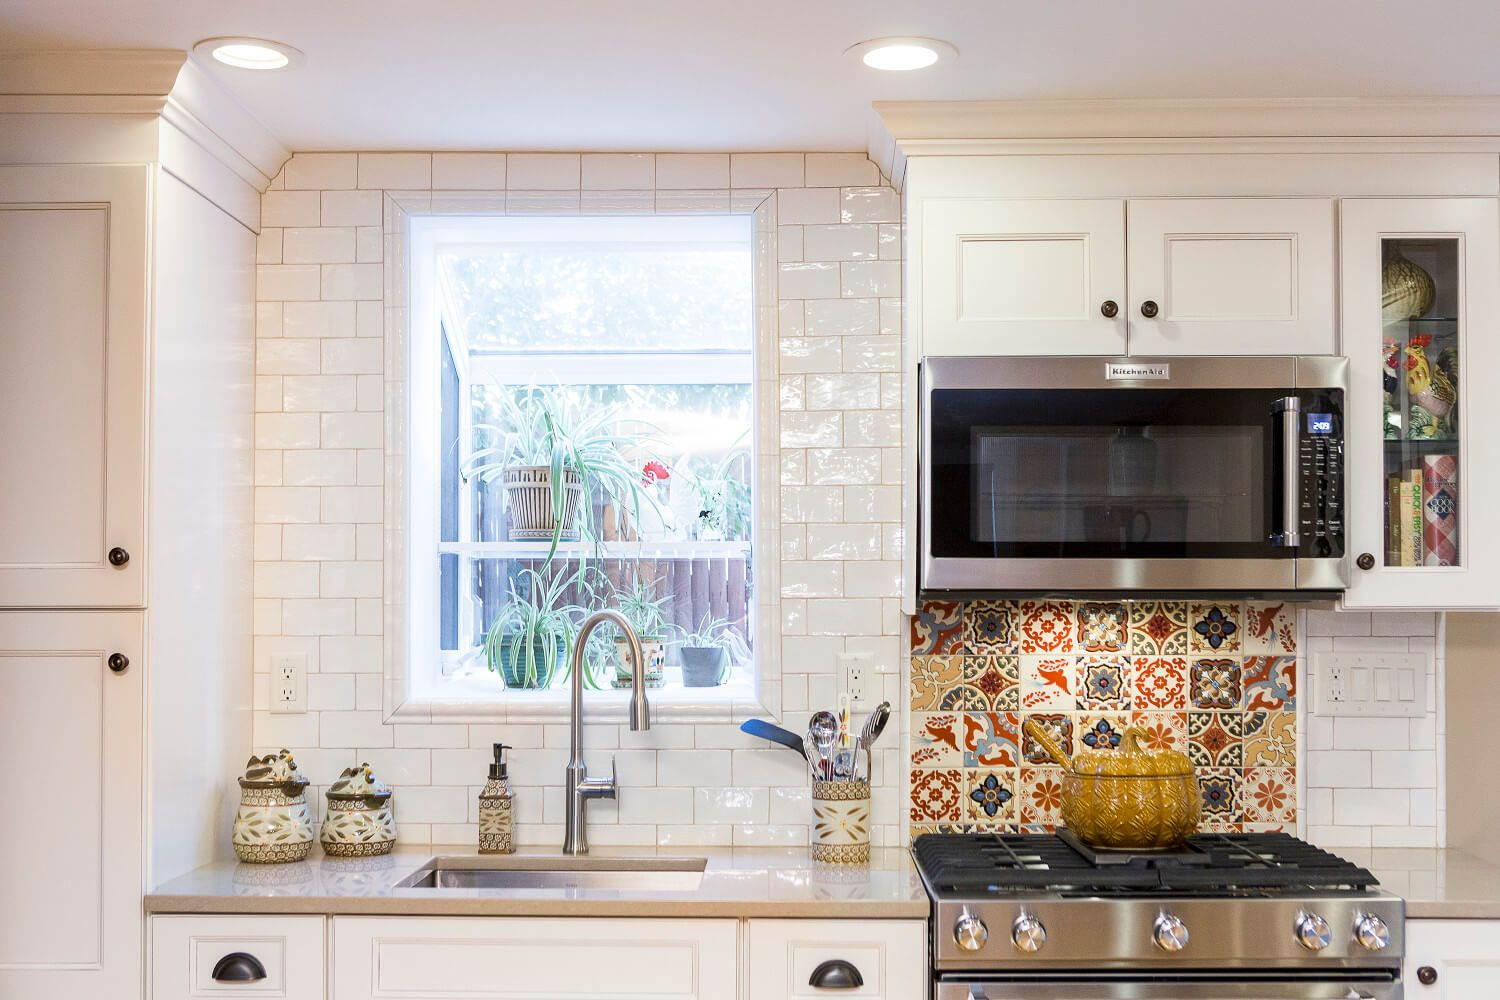 Eclectic kitchen in a historic townhouse in jersey city featuring